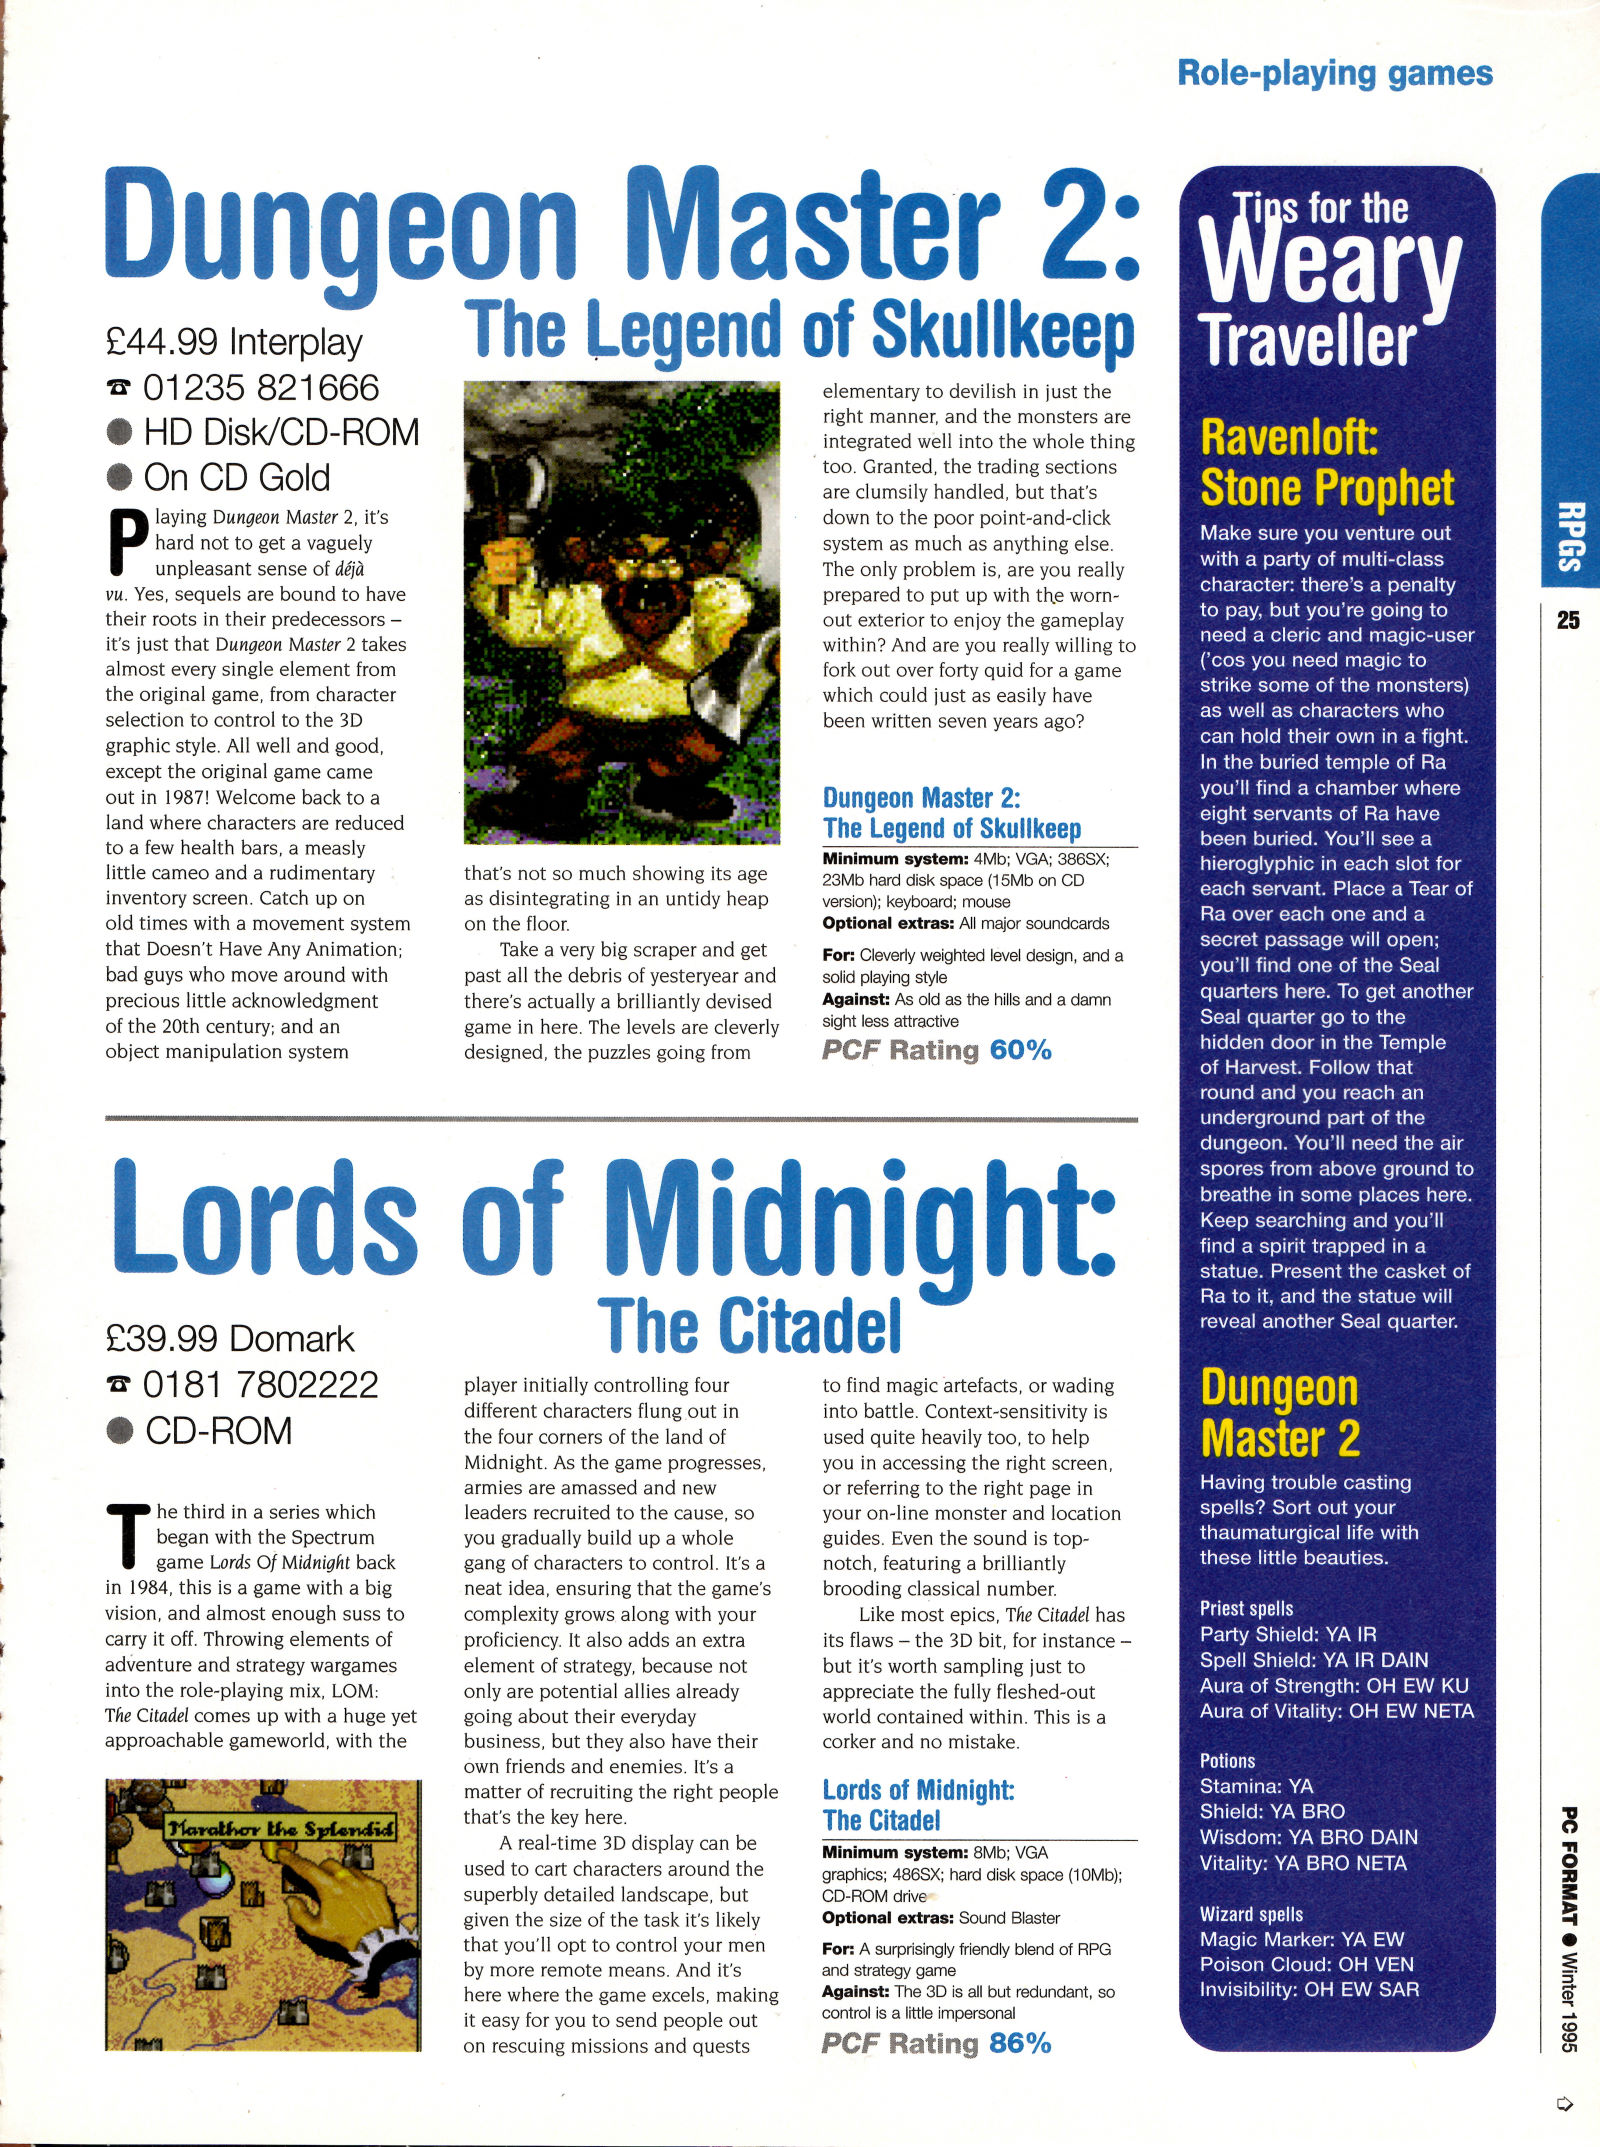 Dungeon Master II for PC Review published in British magazine 'PC Format', Winter 1995, Page 25